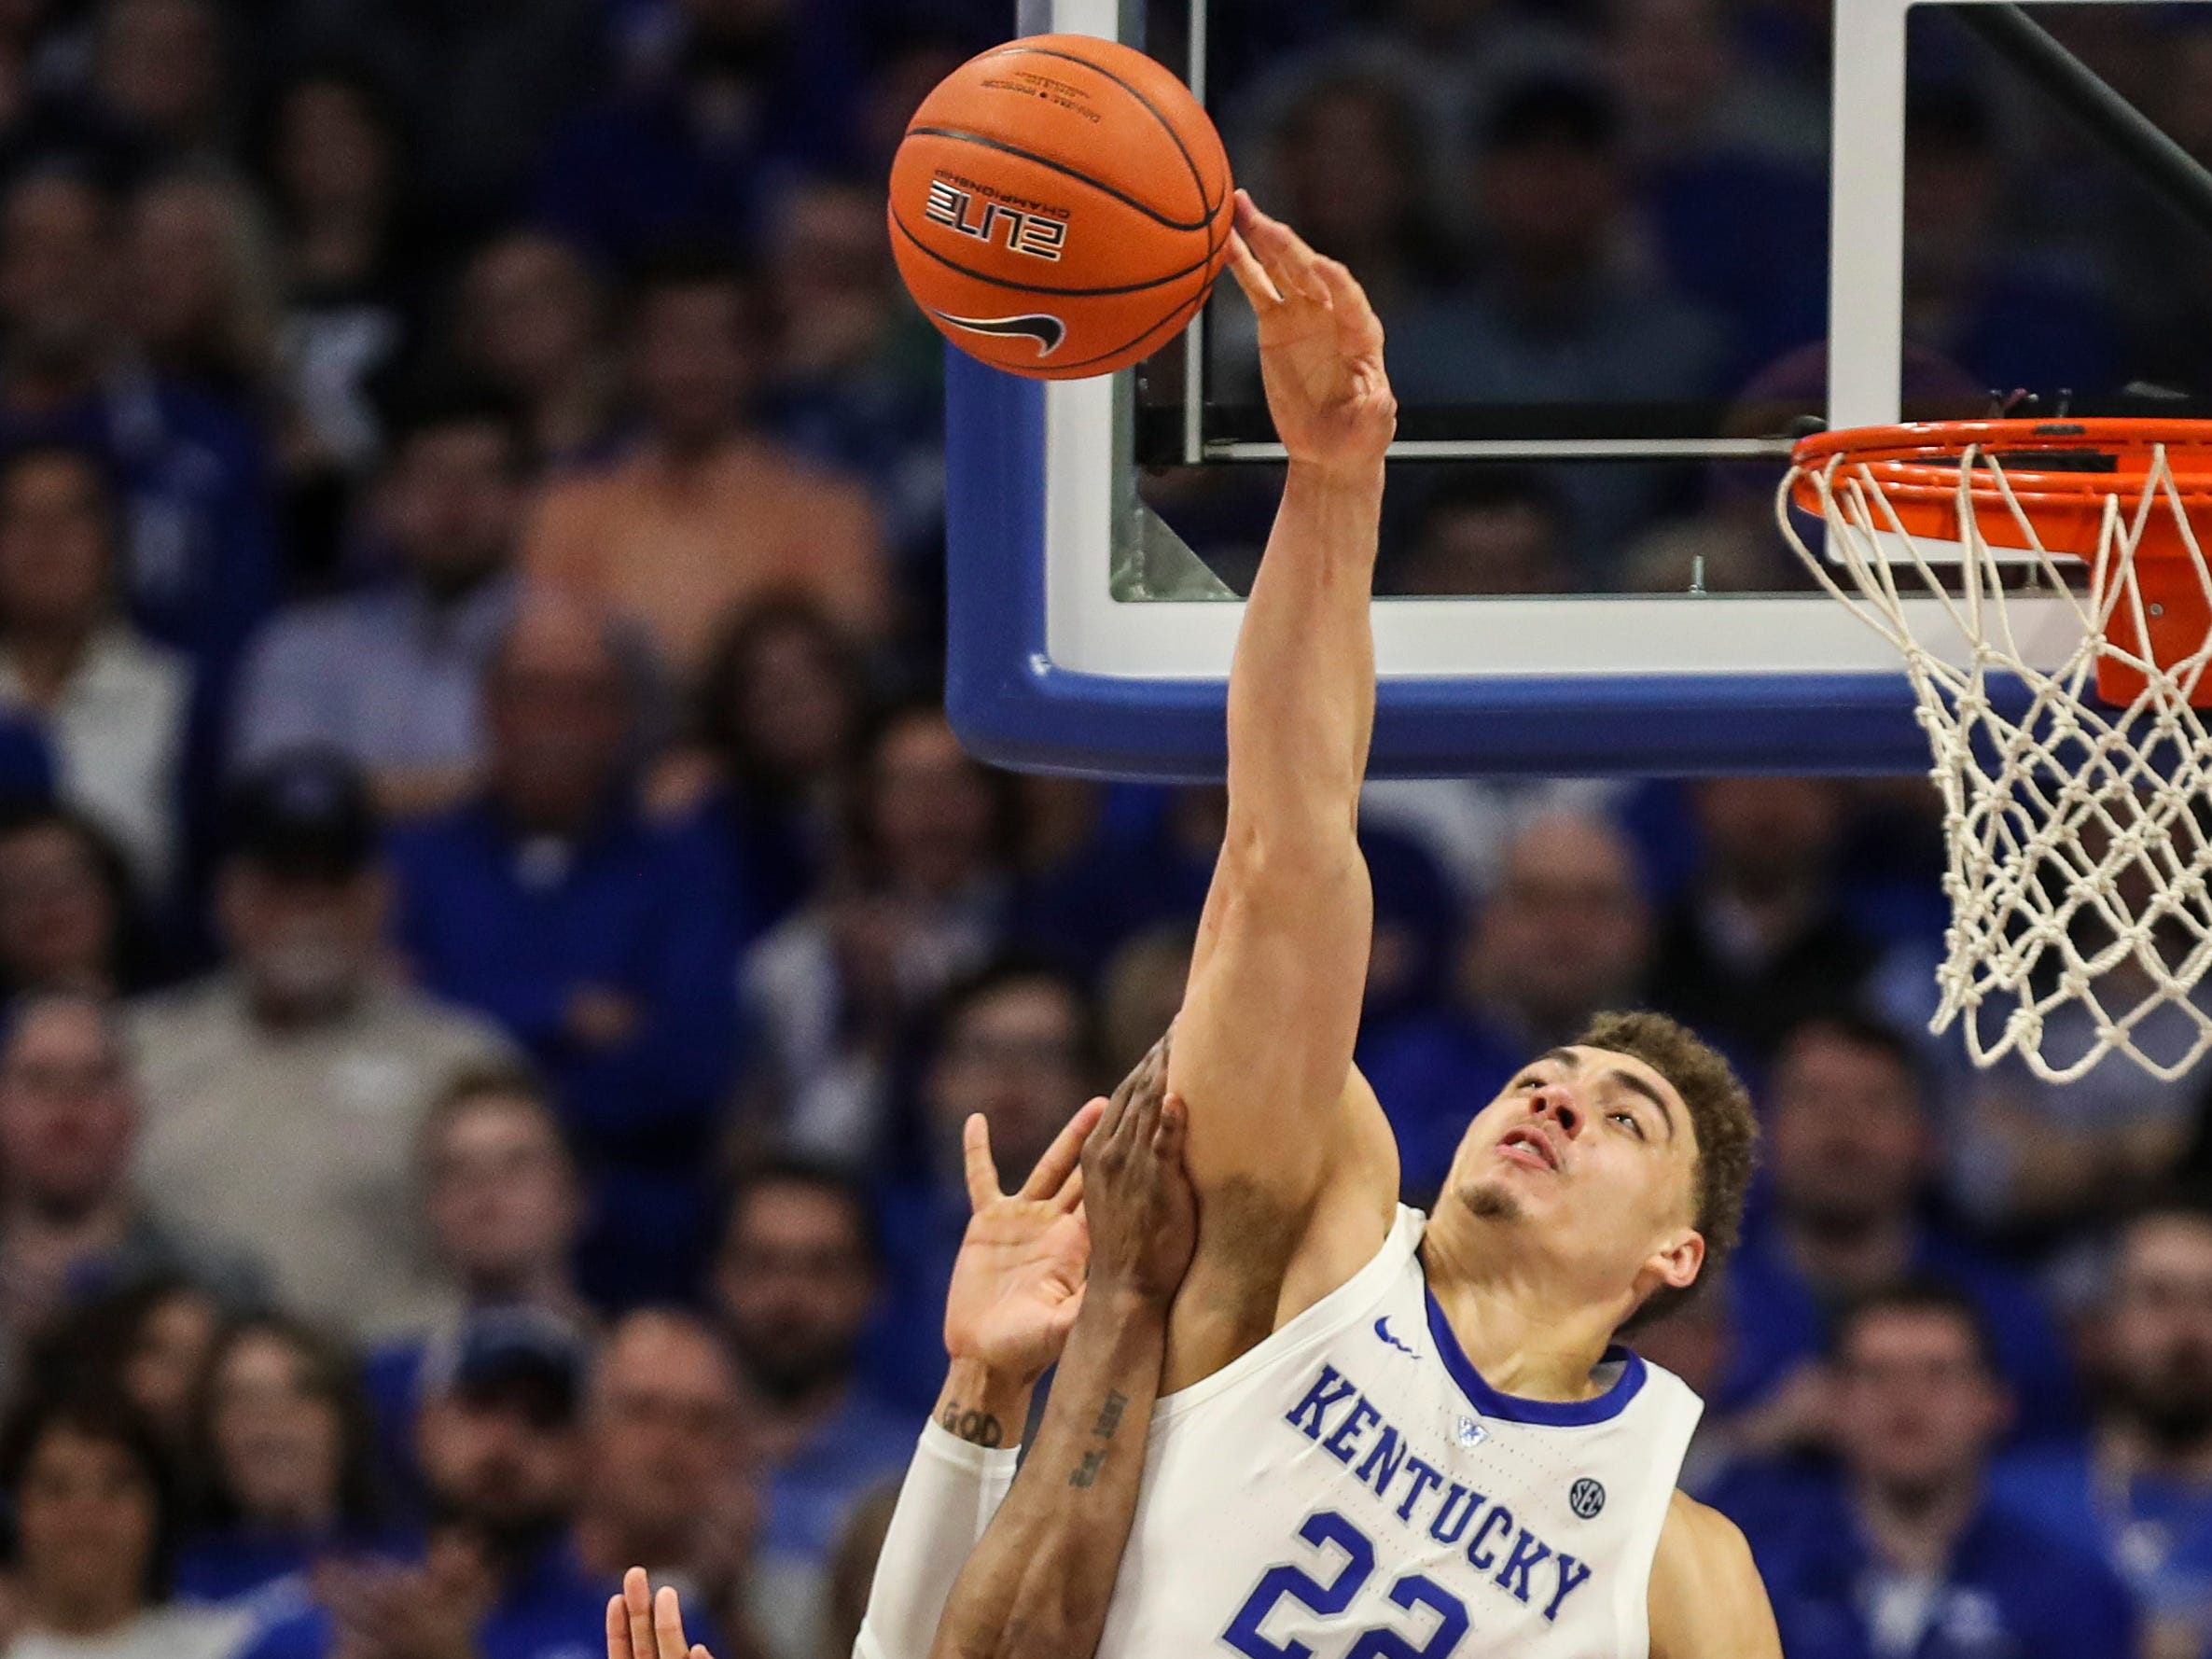 Kentucky's Reid Travis blocks Tennessee's Admiral Schofield's shot in the Wildcats' 86-69 win over the No.1-ranked Volunteers. Feb. 16, 2019